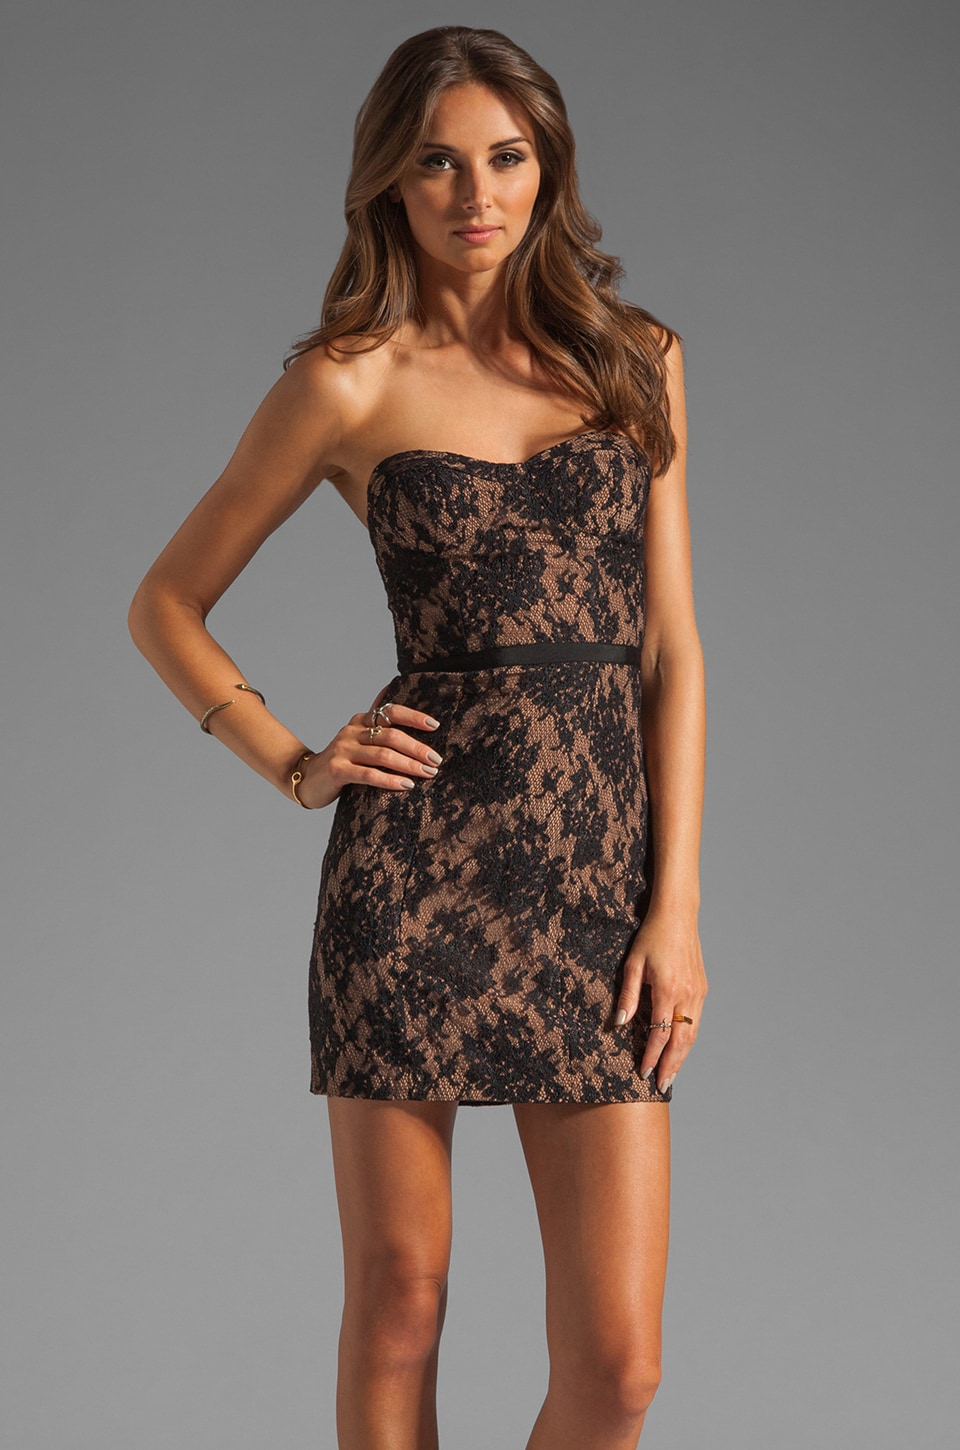 Haute Hippie Lace Corset Dress in Black